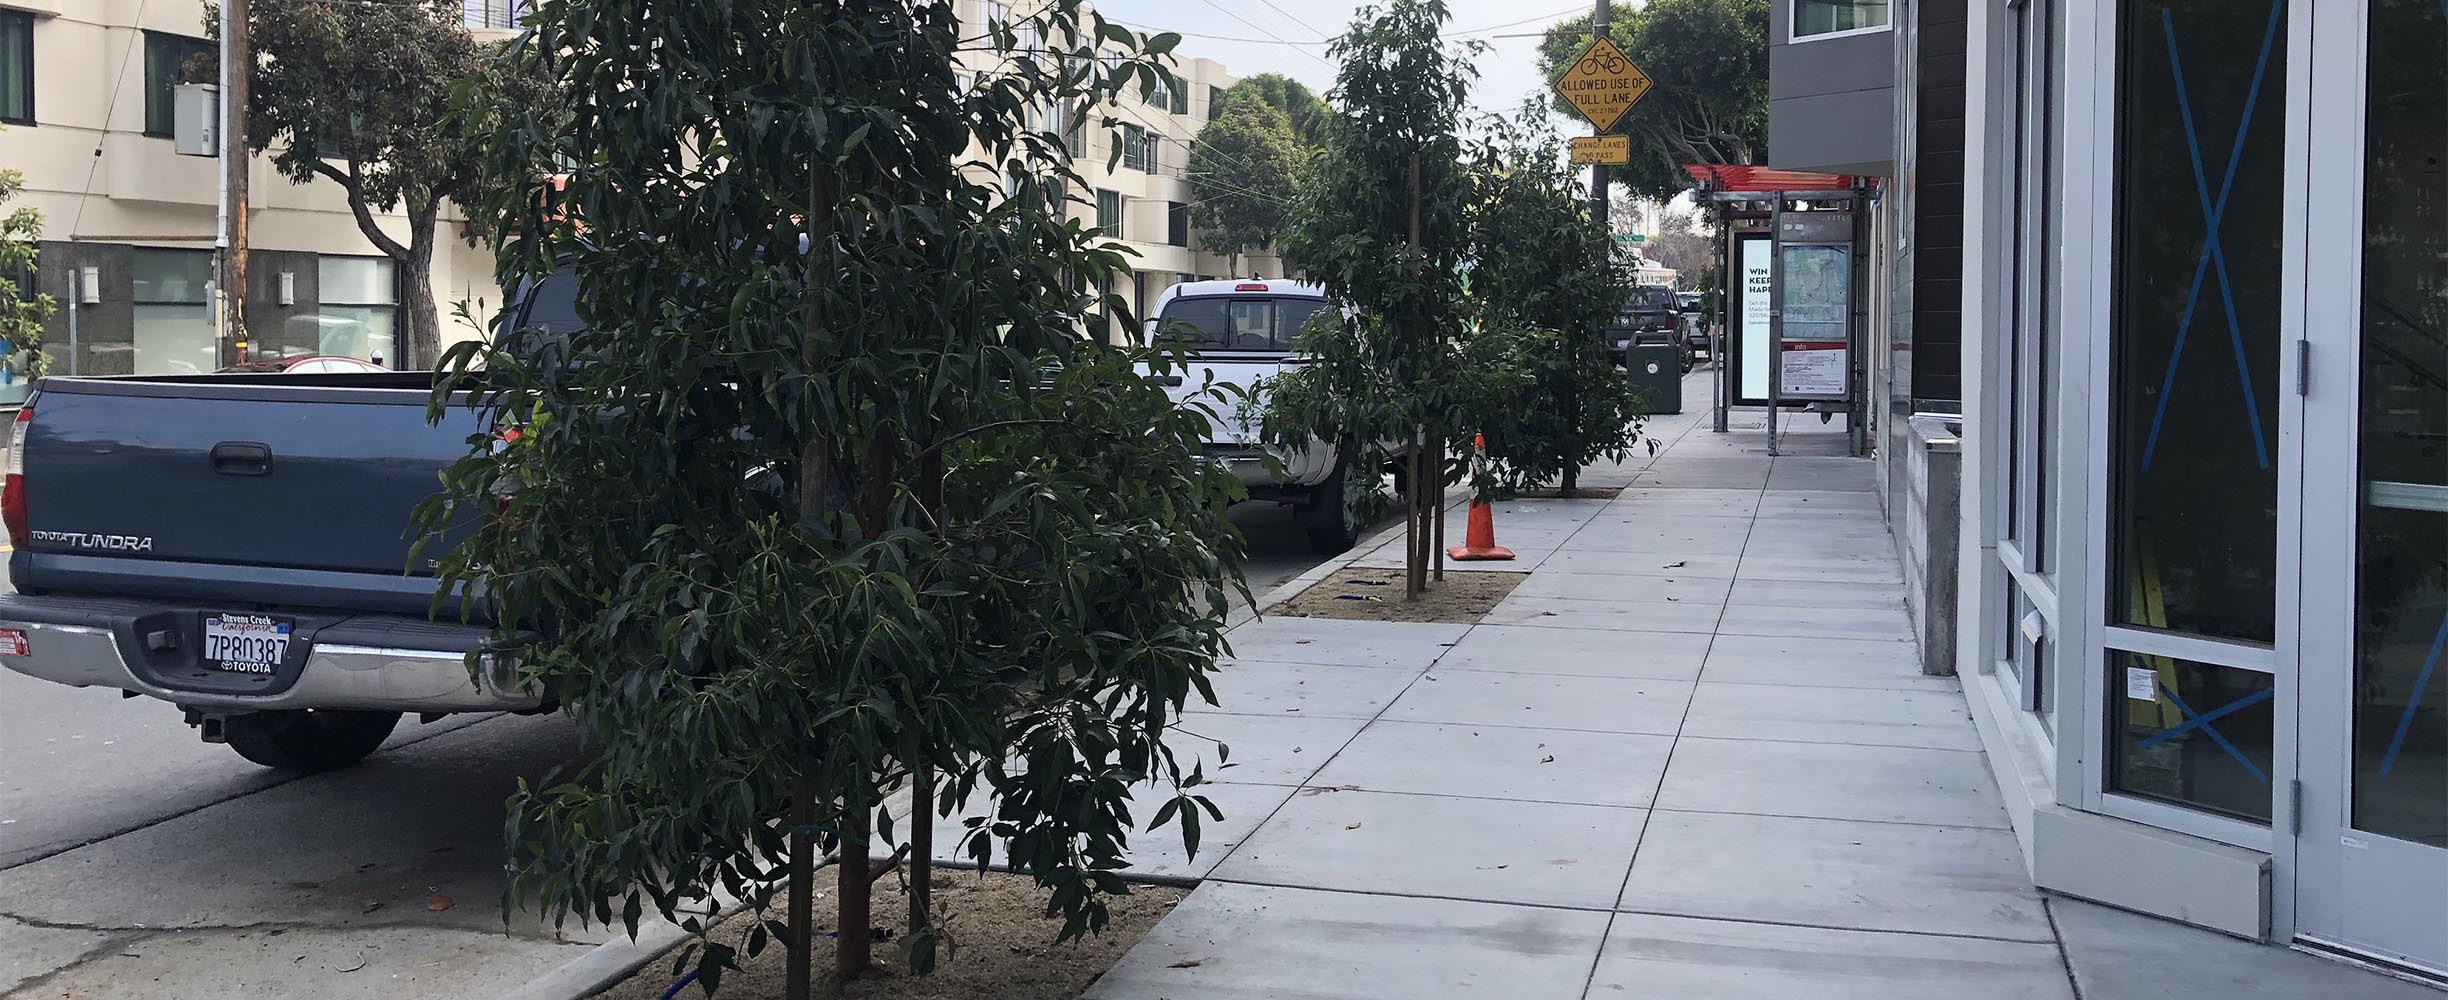 Commercial landscaping, trees planted in walkside for a business in San Francisco/